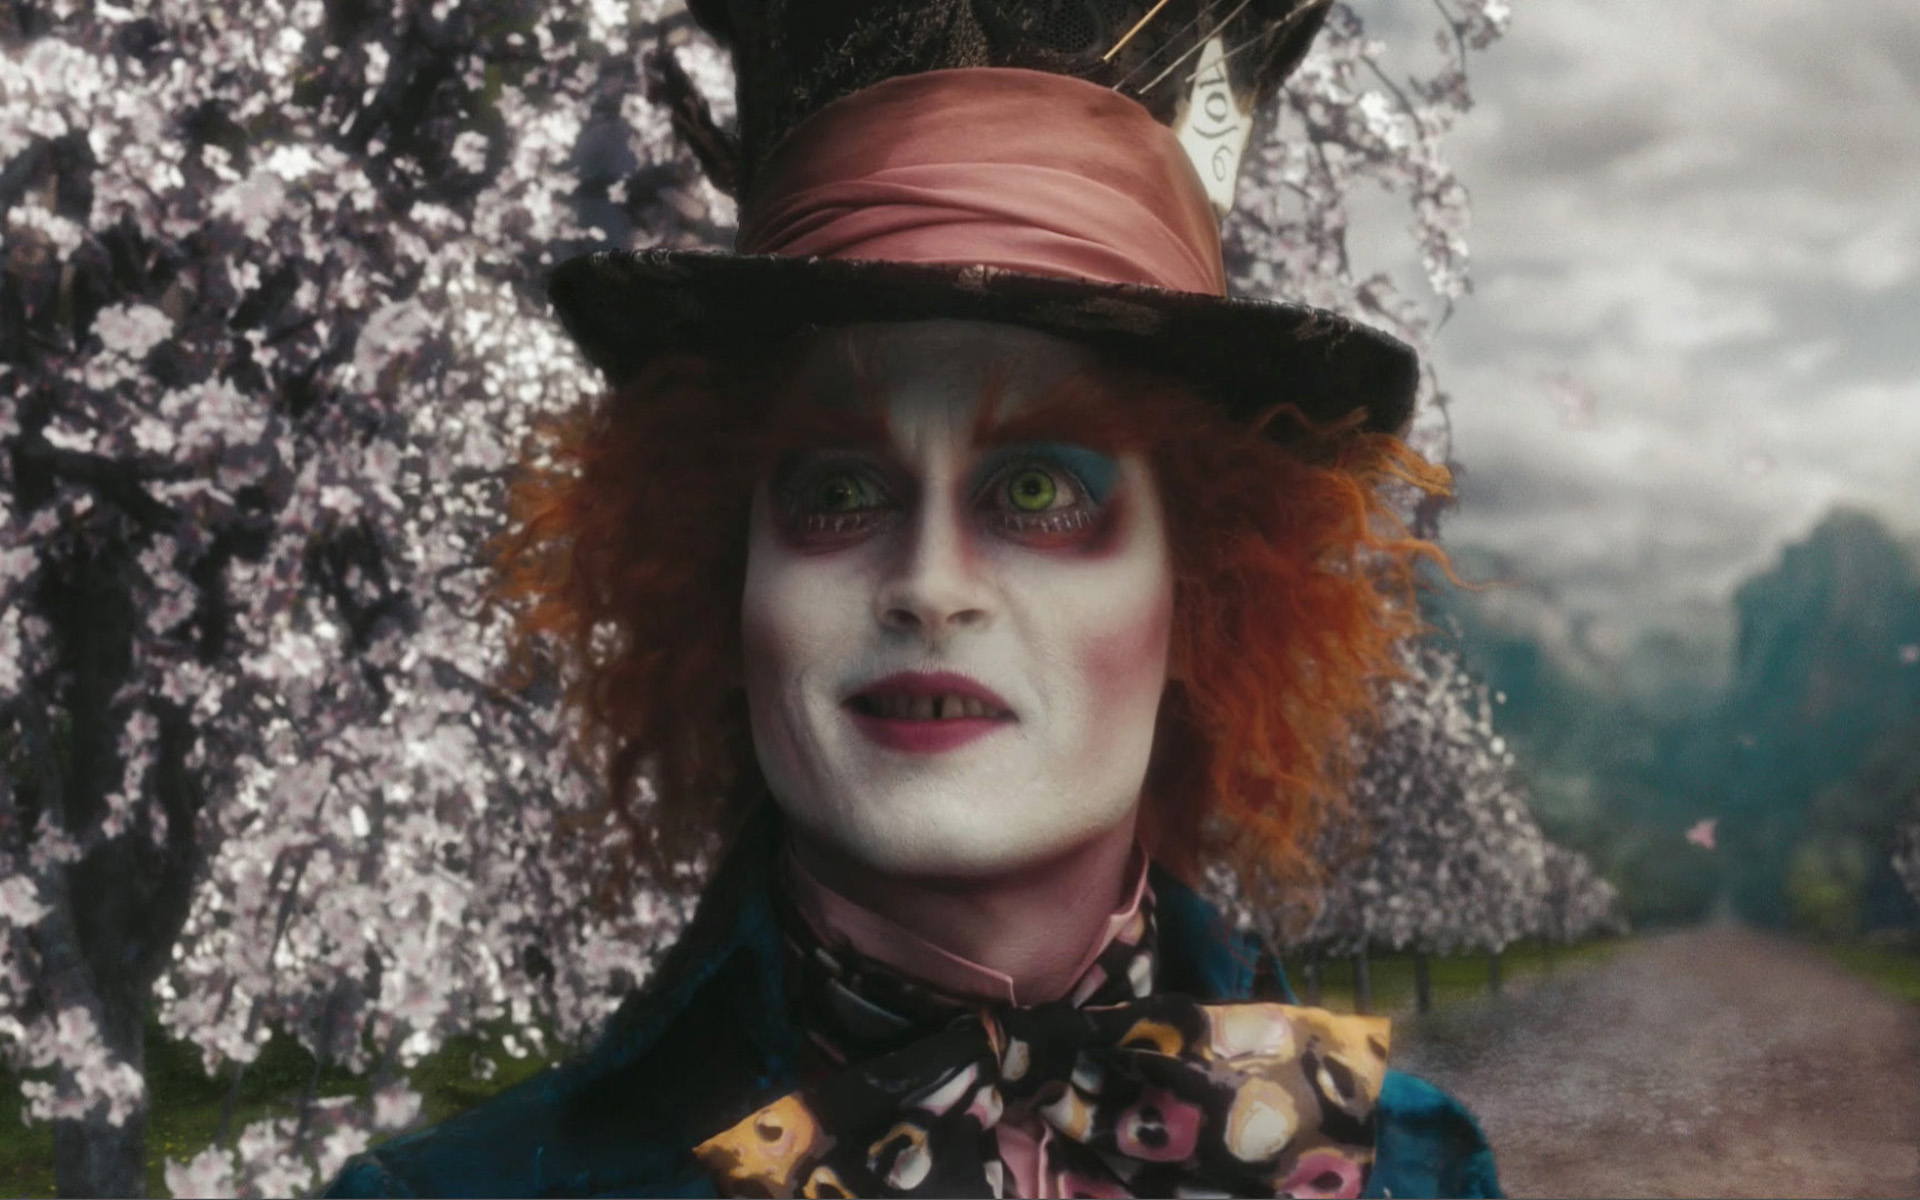 alice in wonderland movie wallpapers collection 7 1920 x